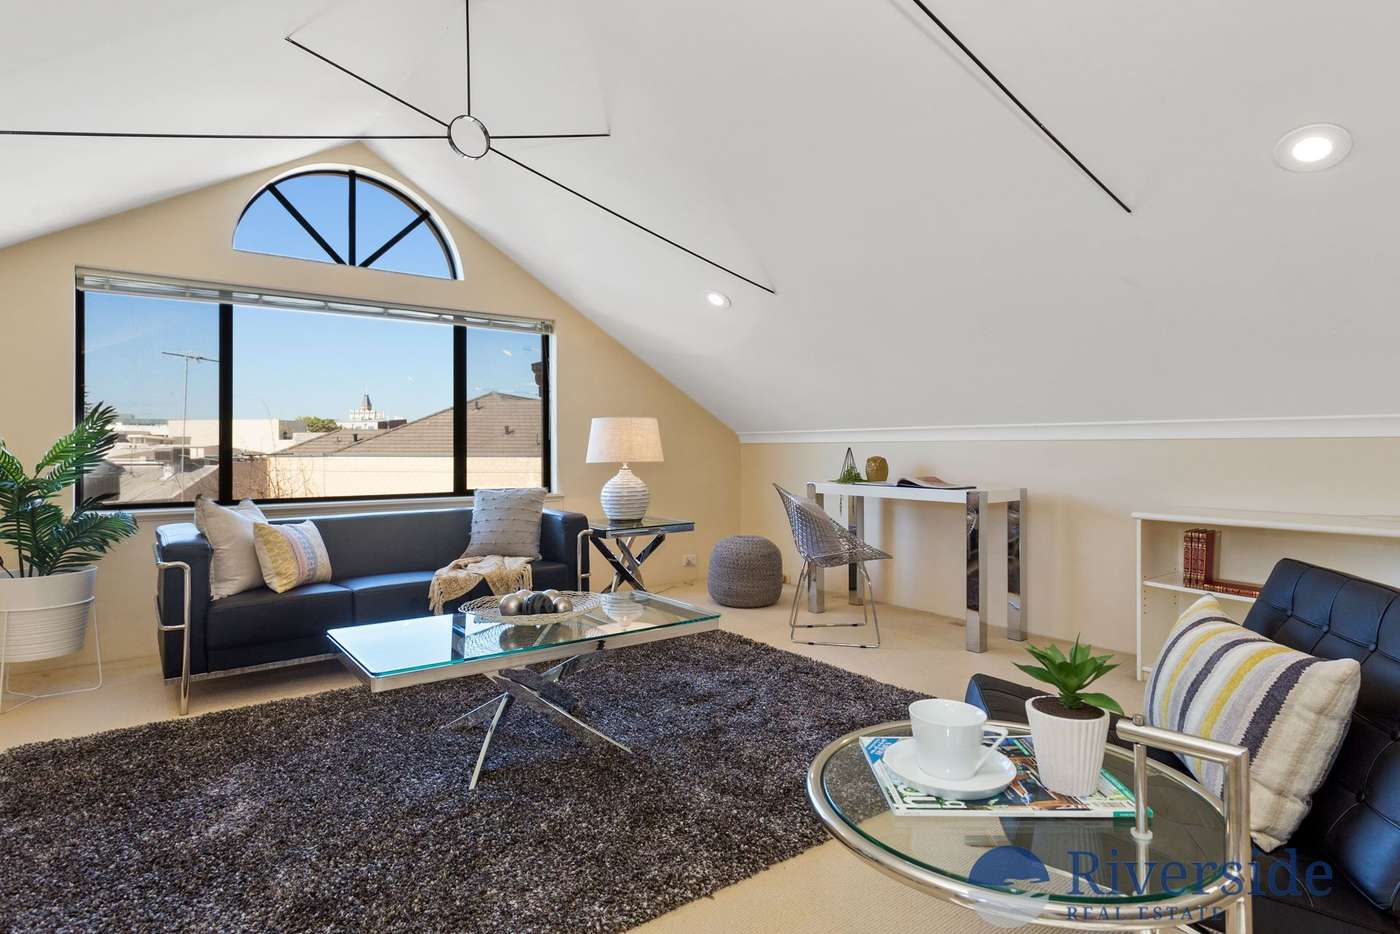 Fifth view of Homely townhouse listing, 36 Marine Terrace, Fremantle WA 6160